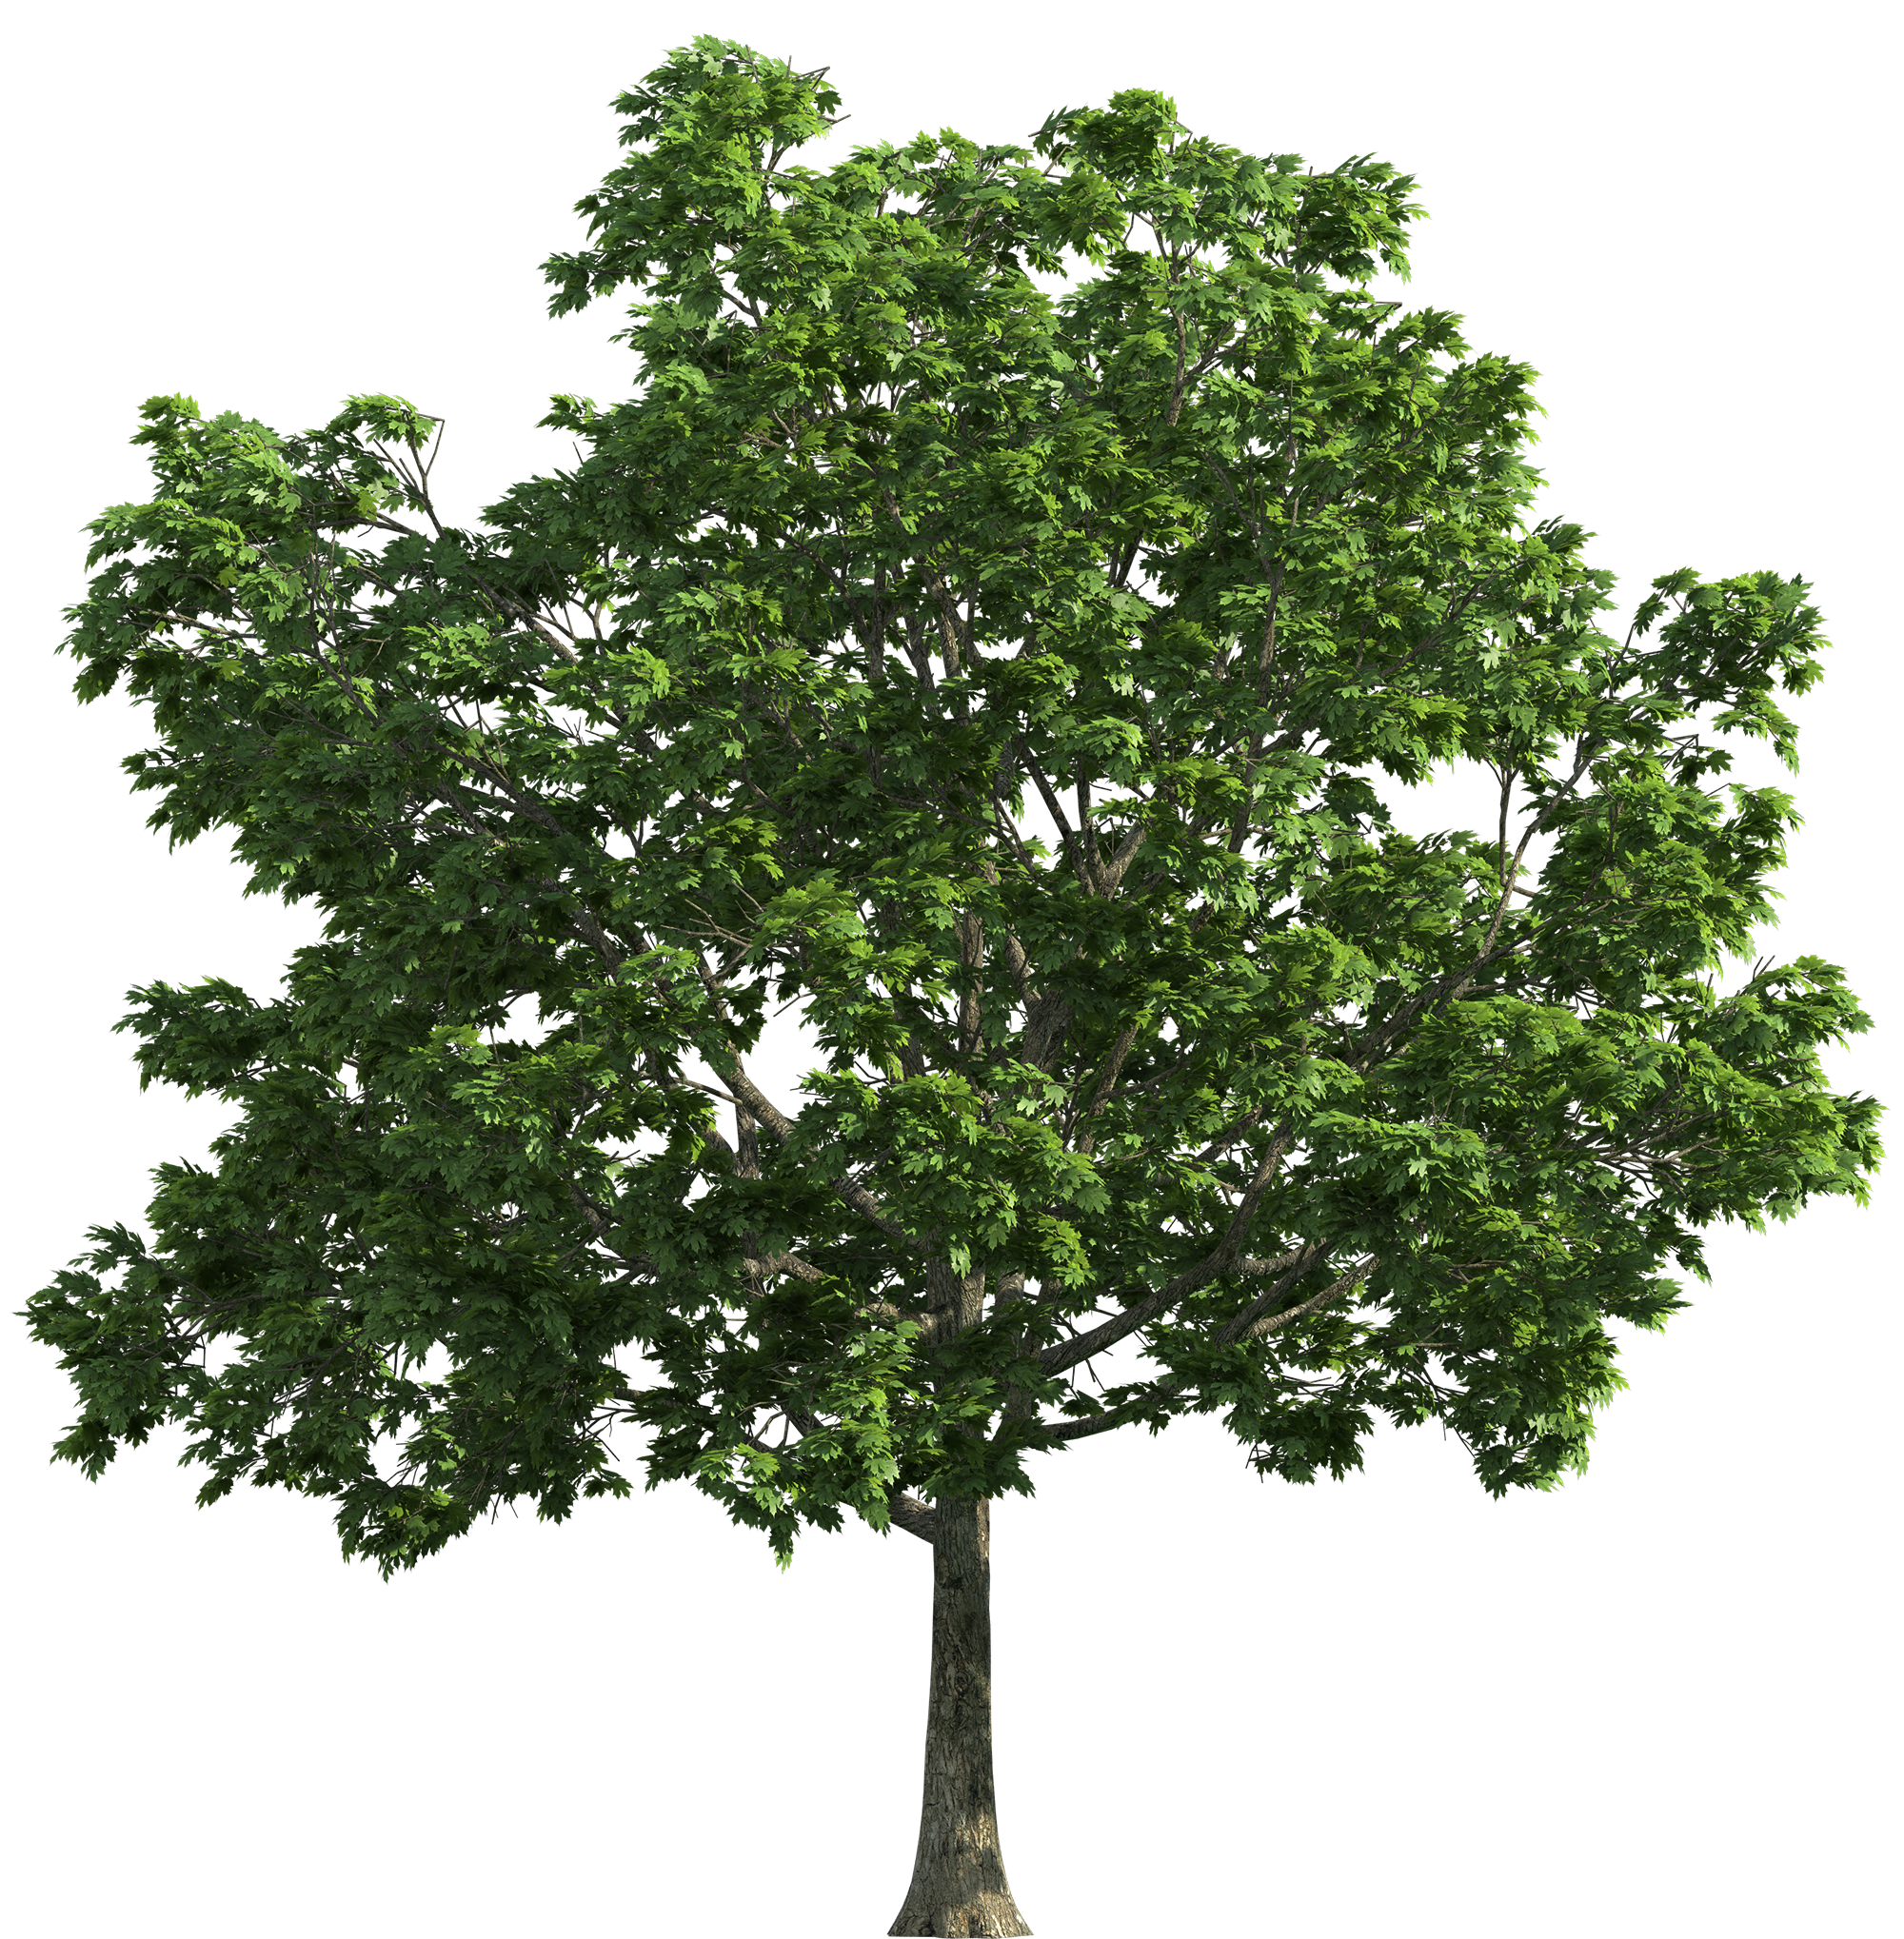 Transparent background tree clipart png royalty free library Tree Transparent PNG Clip Art - Best WEB Clipart png royalty free library